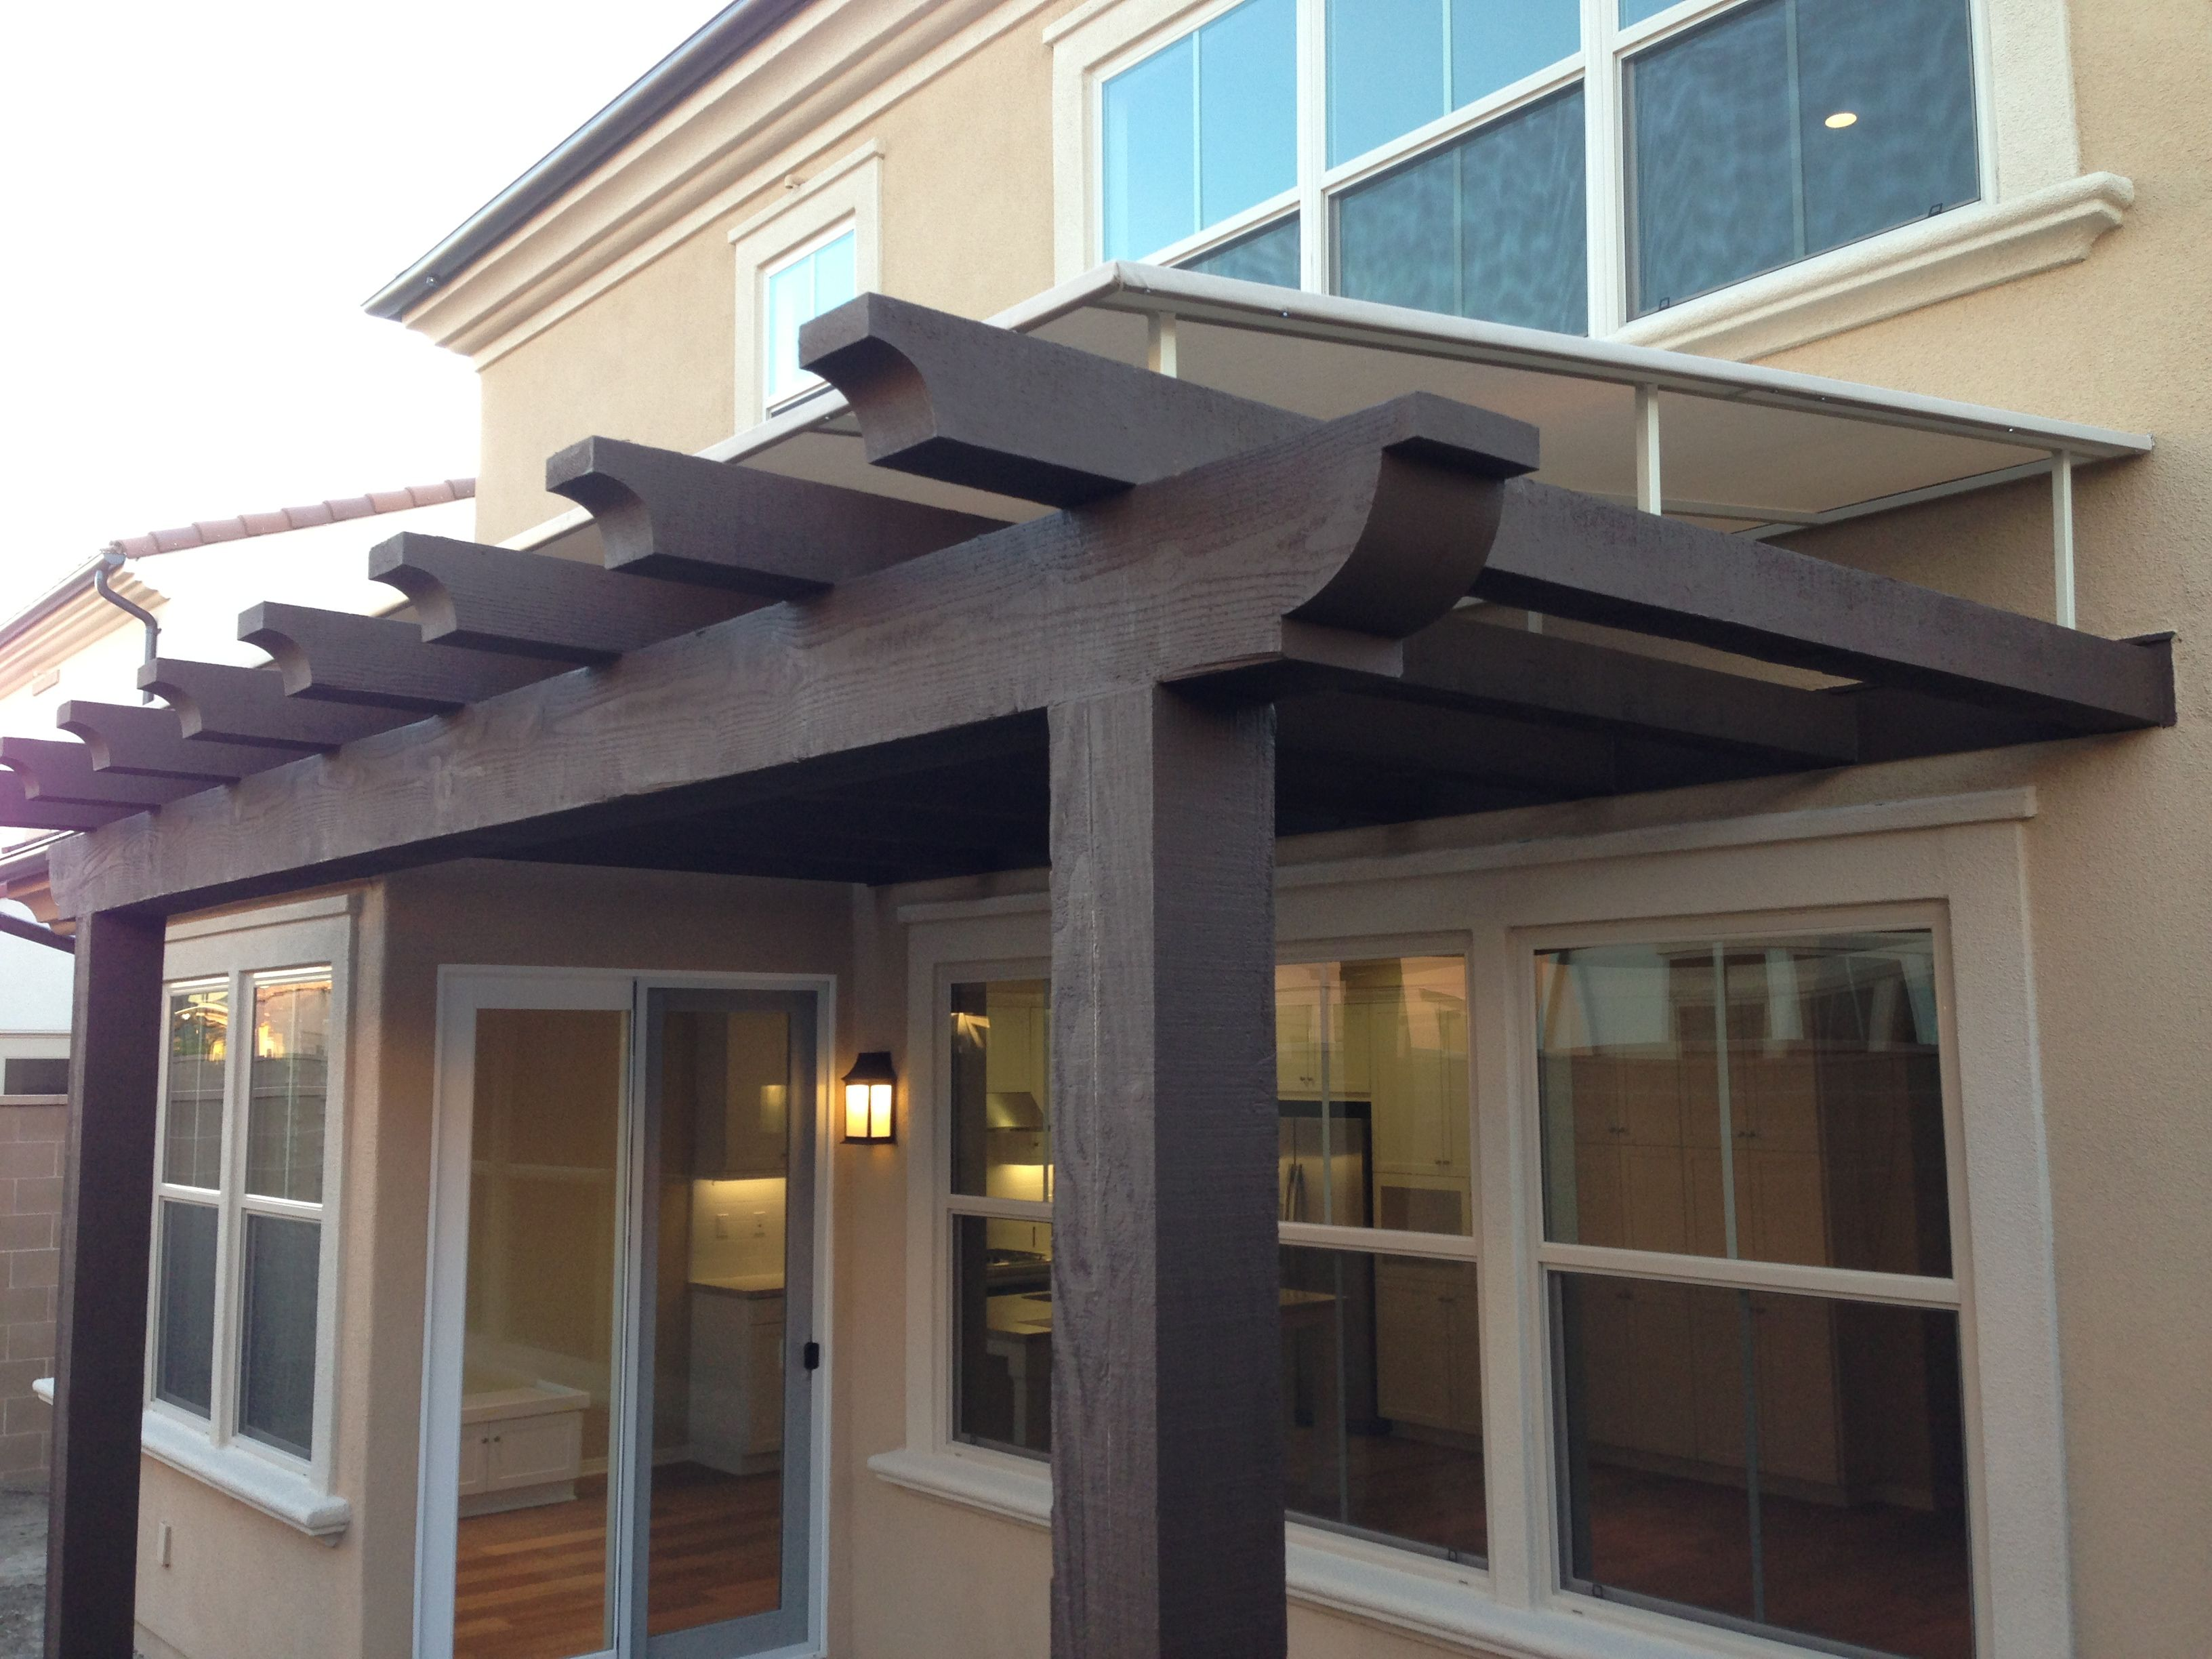 Prefabricated Porches decorations-exterior-strikking-sloped-roof-pergola-cover-with-wood